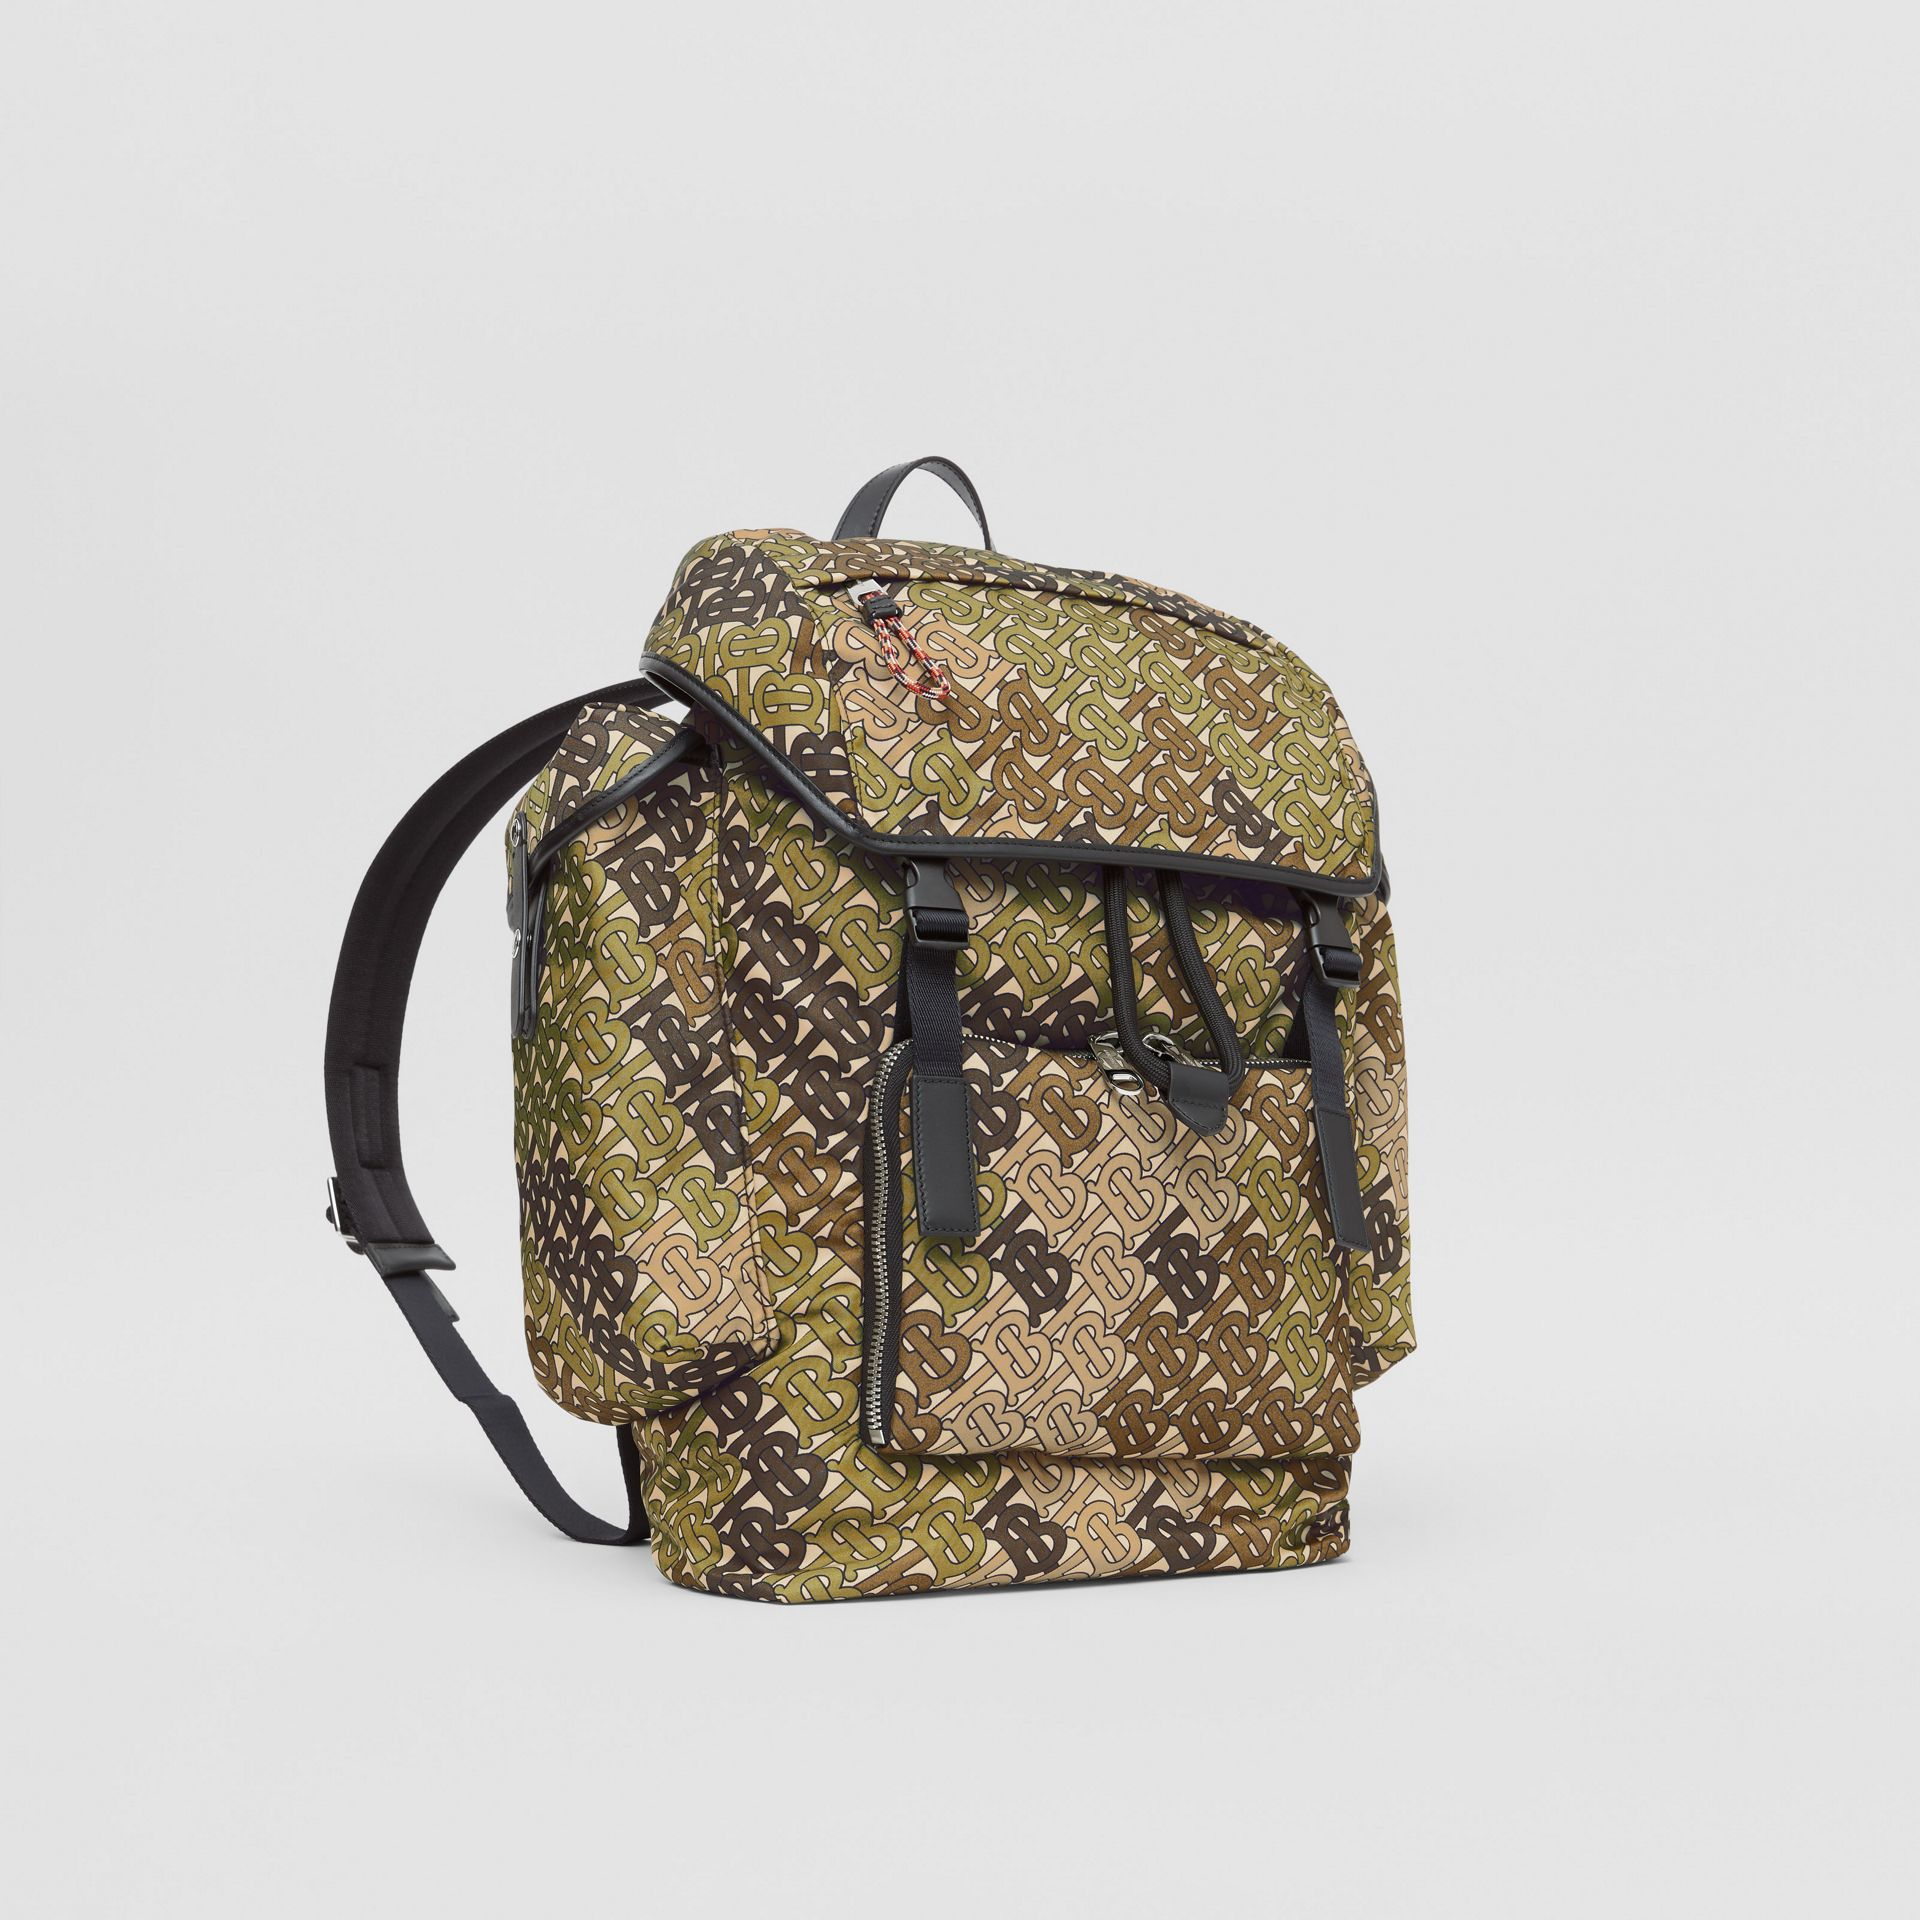 Medium Monogram Print Nylon Backpack in Khaki Green - Men | Burberry Hong Kong - gallery image 6